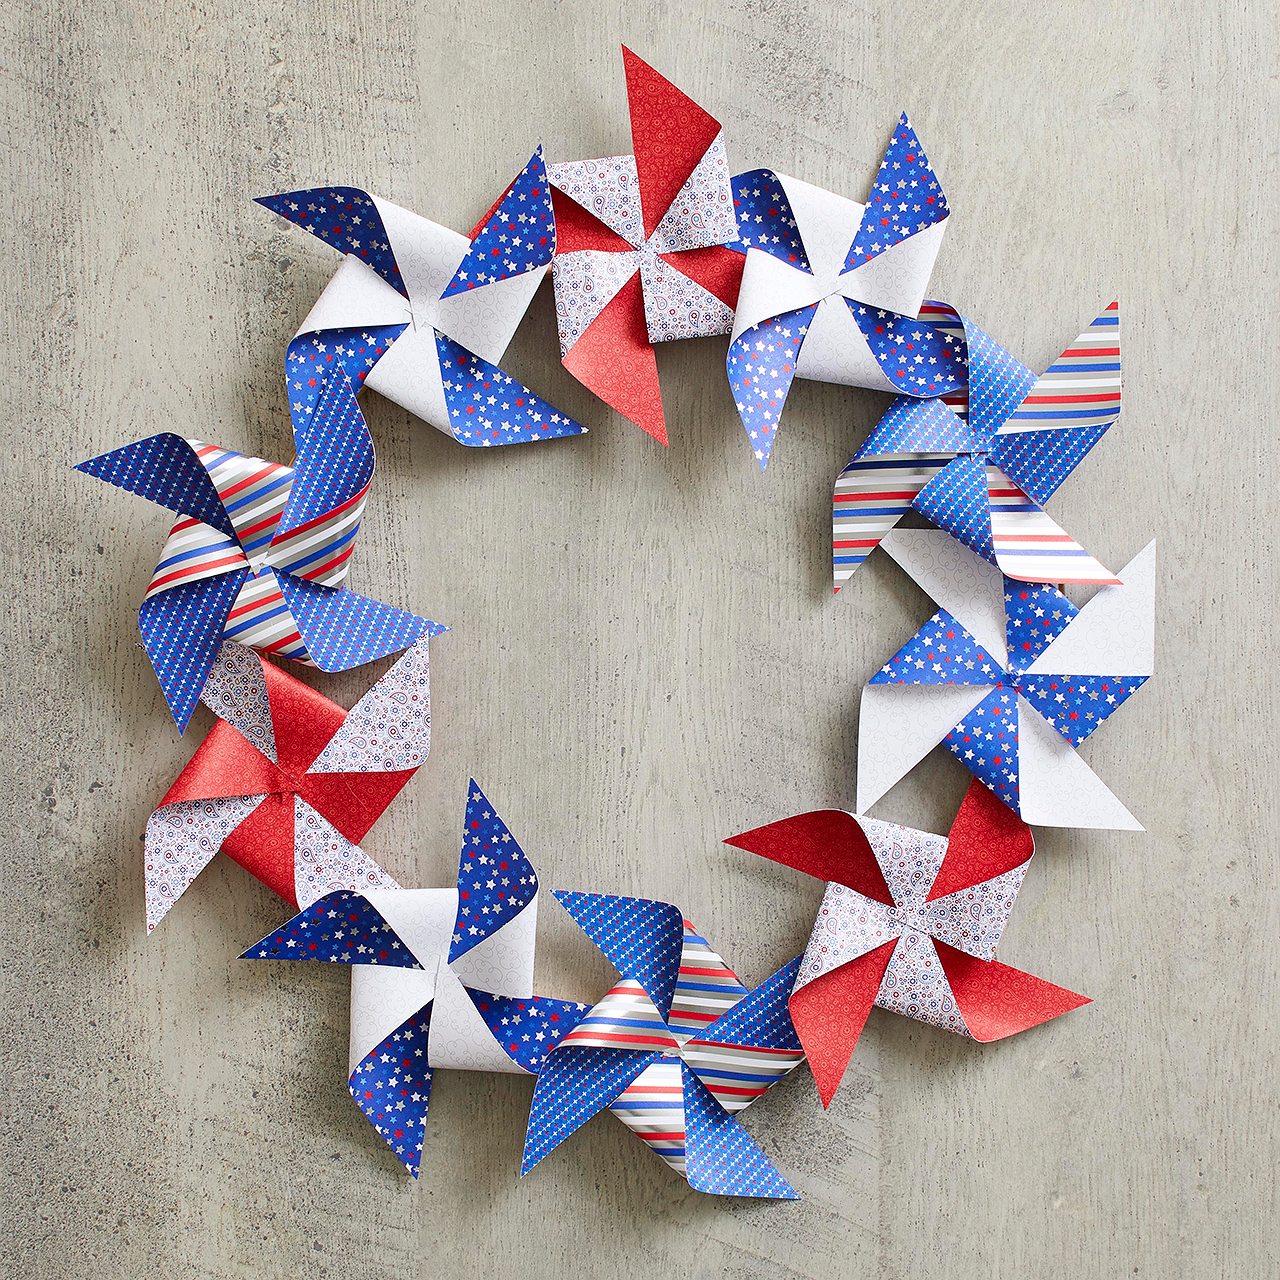 Home crafts you can make with paper 25 Fast And Fun 4th Of July Crafts You Can Make Right Now